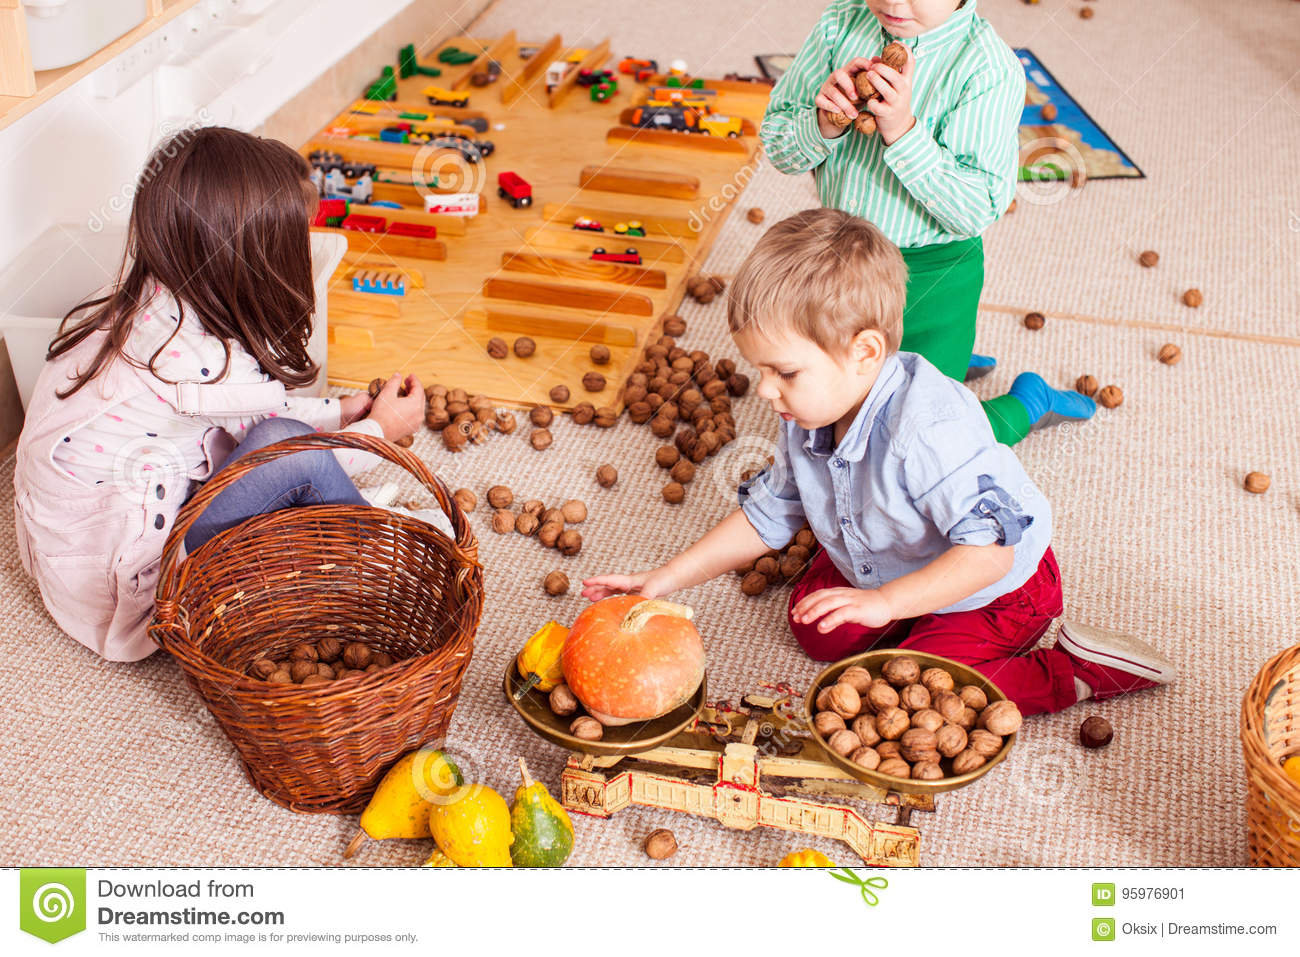 070aae76f0cf Learning through play stock image. Image of elementary - 95976901